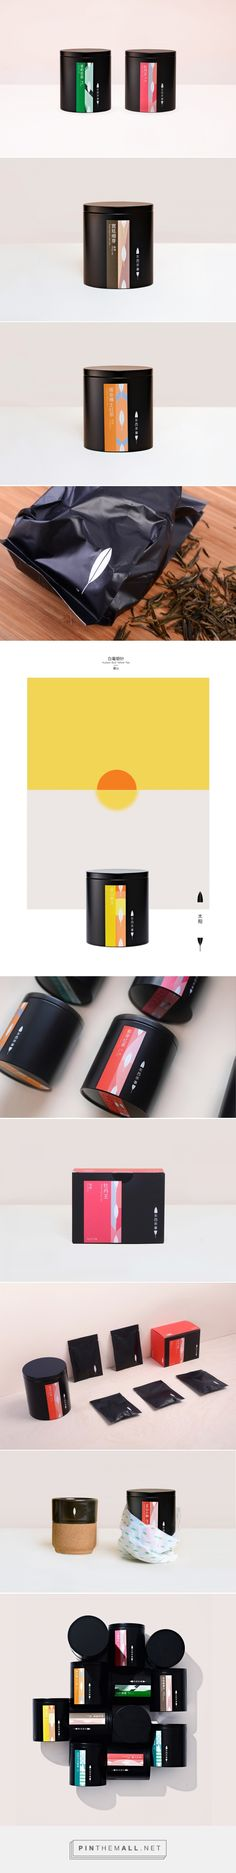 Art direction, branding and packaging for 东西茶事 Any Tea on Behance by Konrad Sybilski Warsaw, Poland curated by Packaging Diva PD. A modern Chinese brand for people seeking high quality products made from selected fine tea from all over the country.